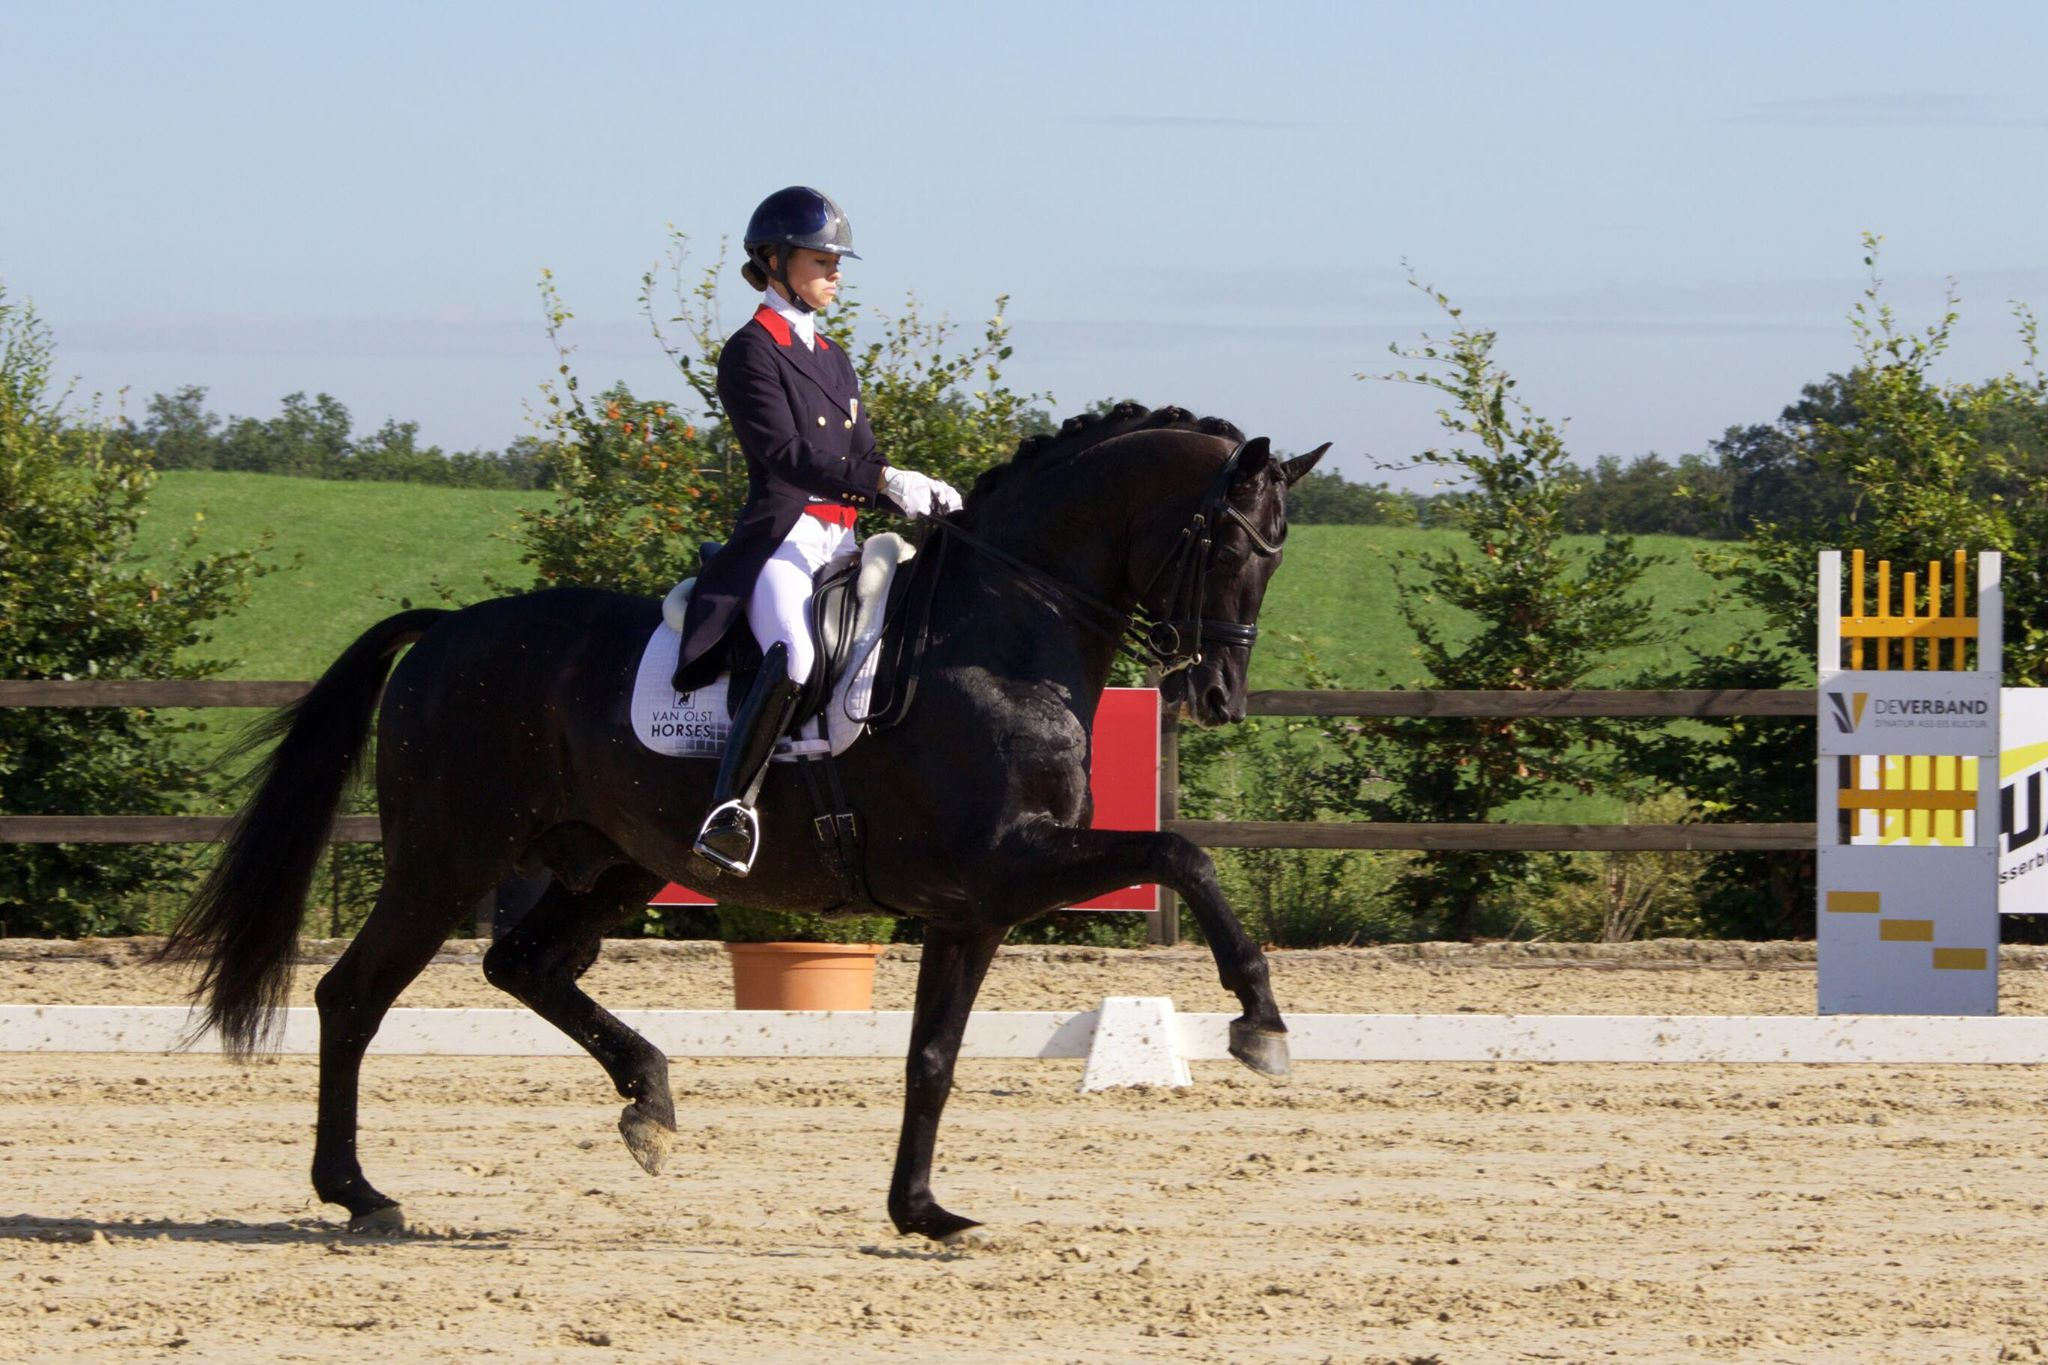 Glamourdale and Charlotte Fry from today's test at Leudelange LUX